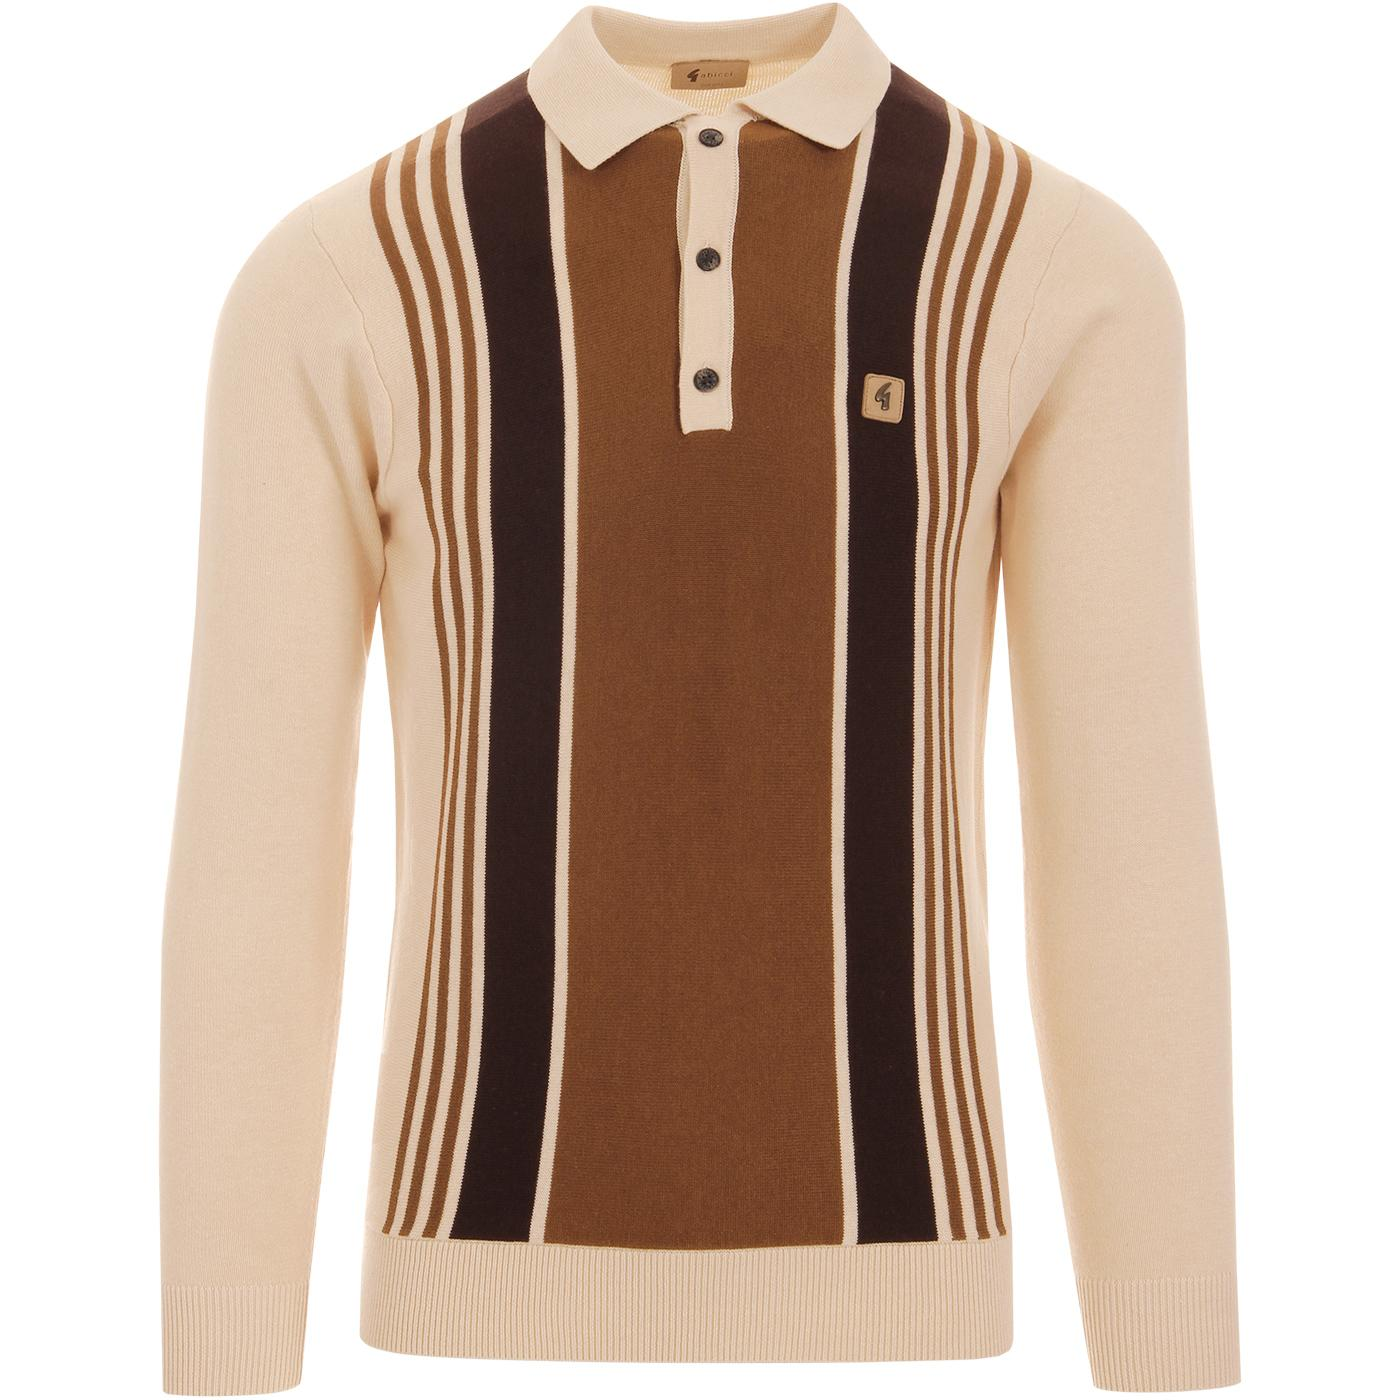 Searle GABICCI VINTAGE Mod Stripe Knit Polo (Oat)